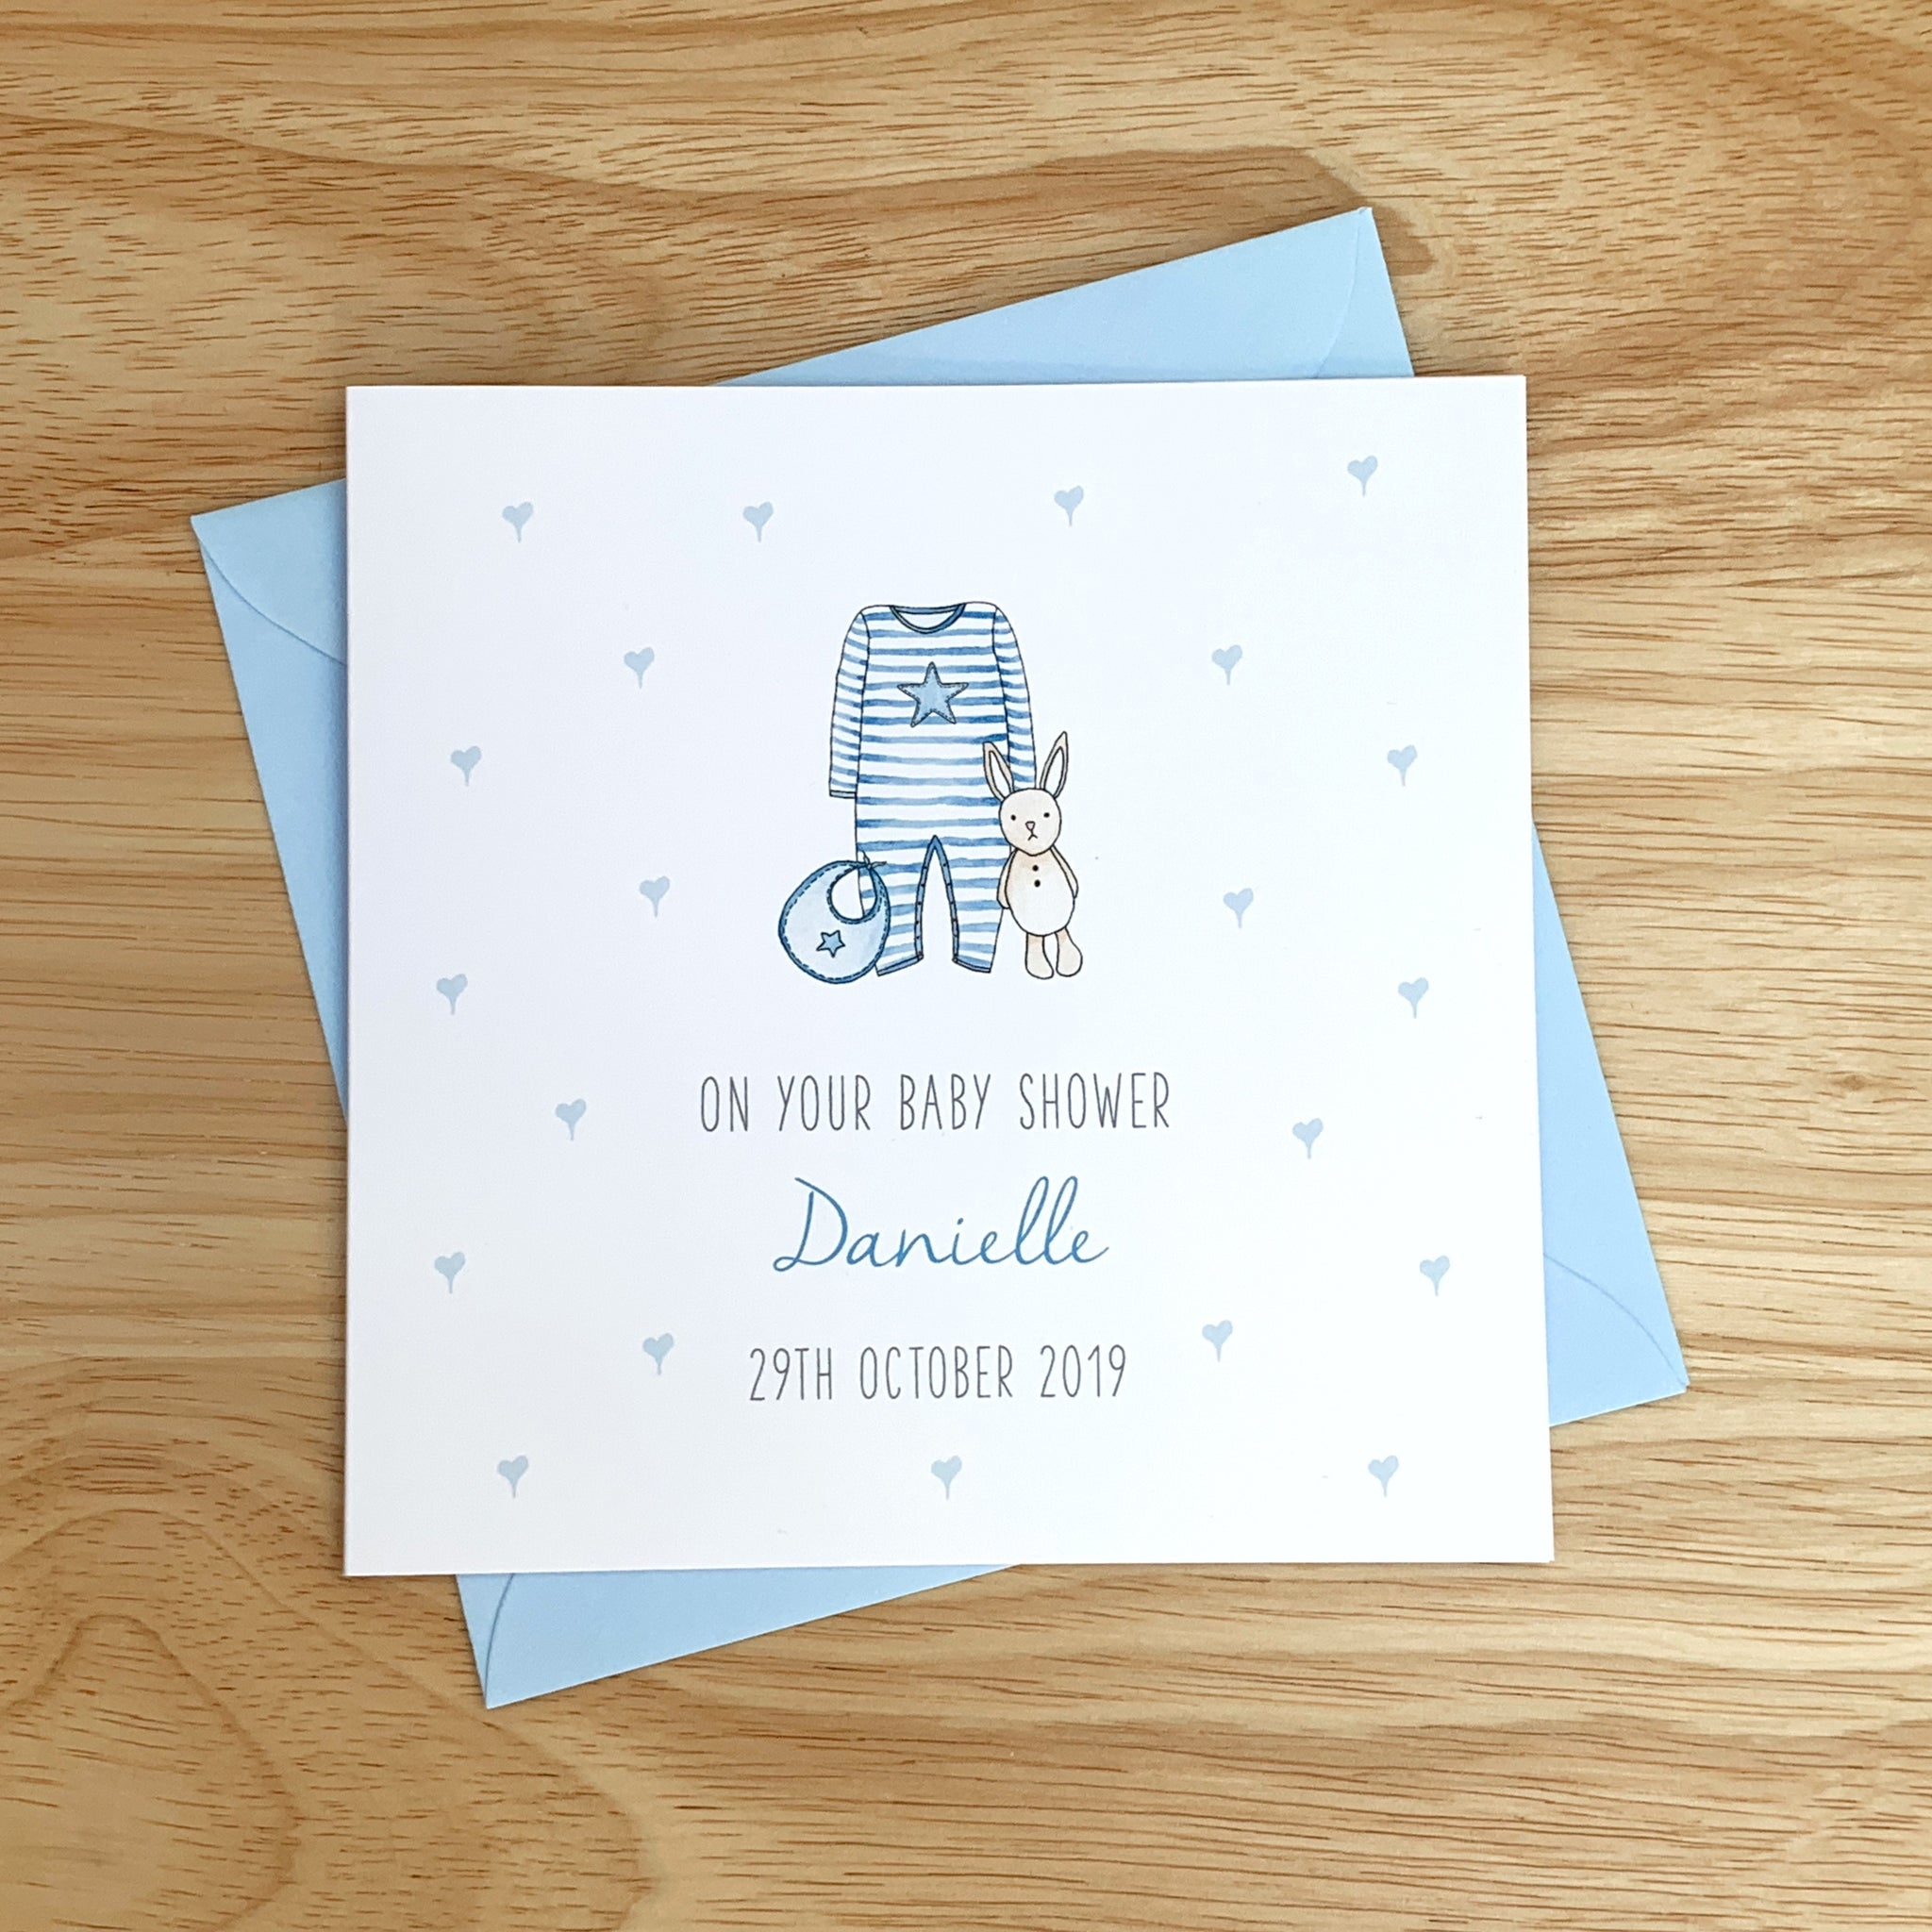 Handmade Personalised Baby Shower Card - On your baby shower card